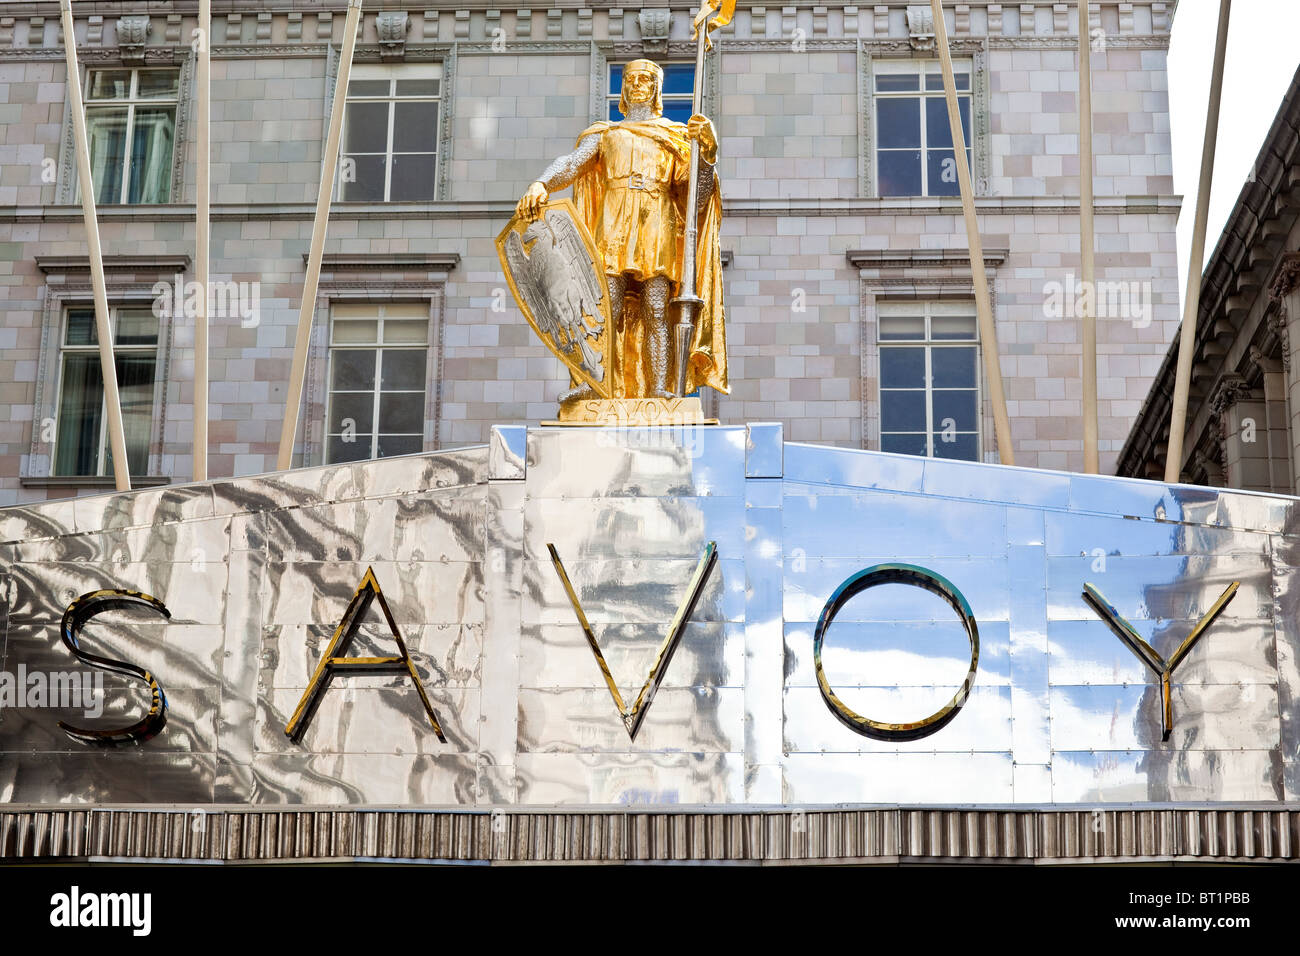 Savoy Hotel in London. Reopened in October 2010 after a complete refurbishment. Photos show the exterior main entrance - Stock Image